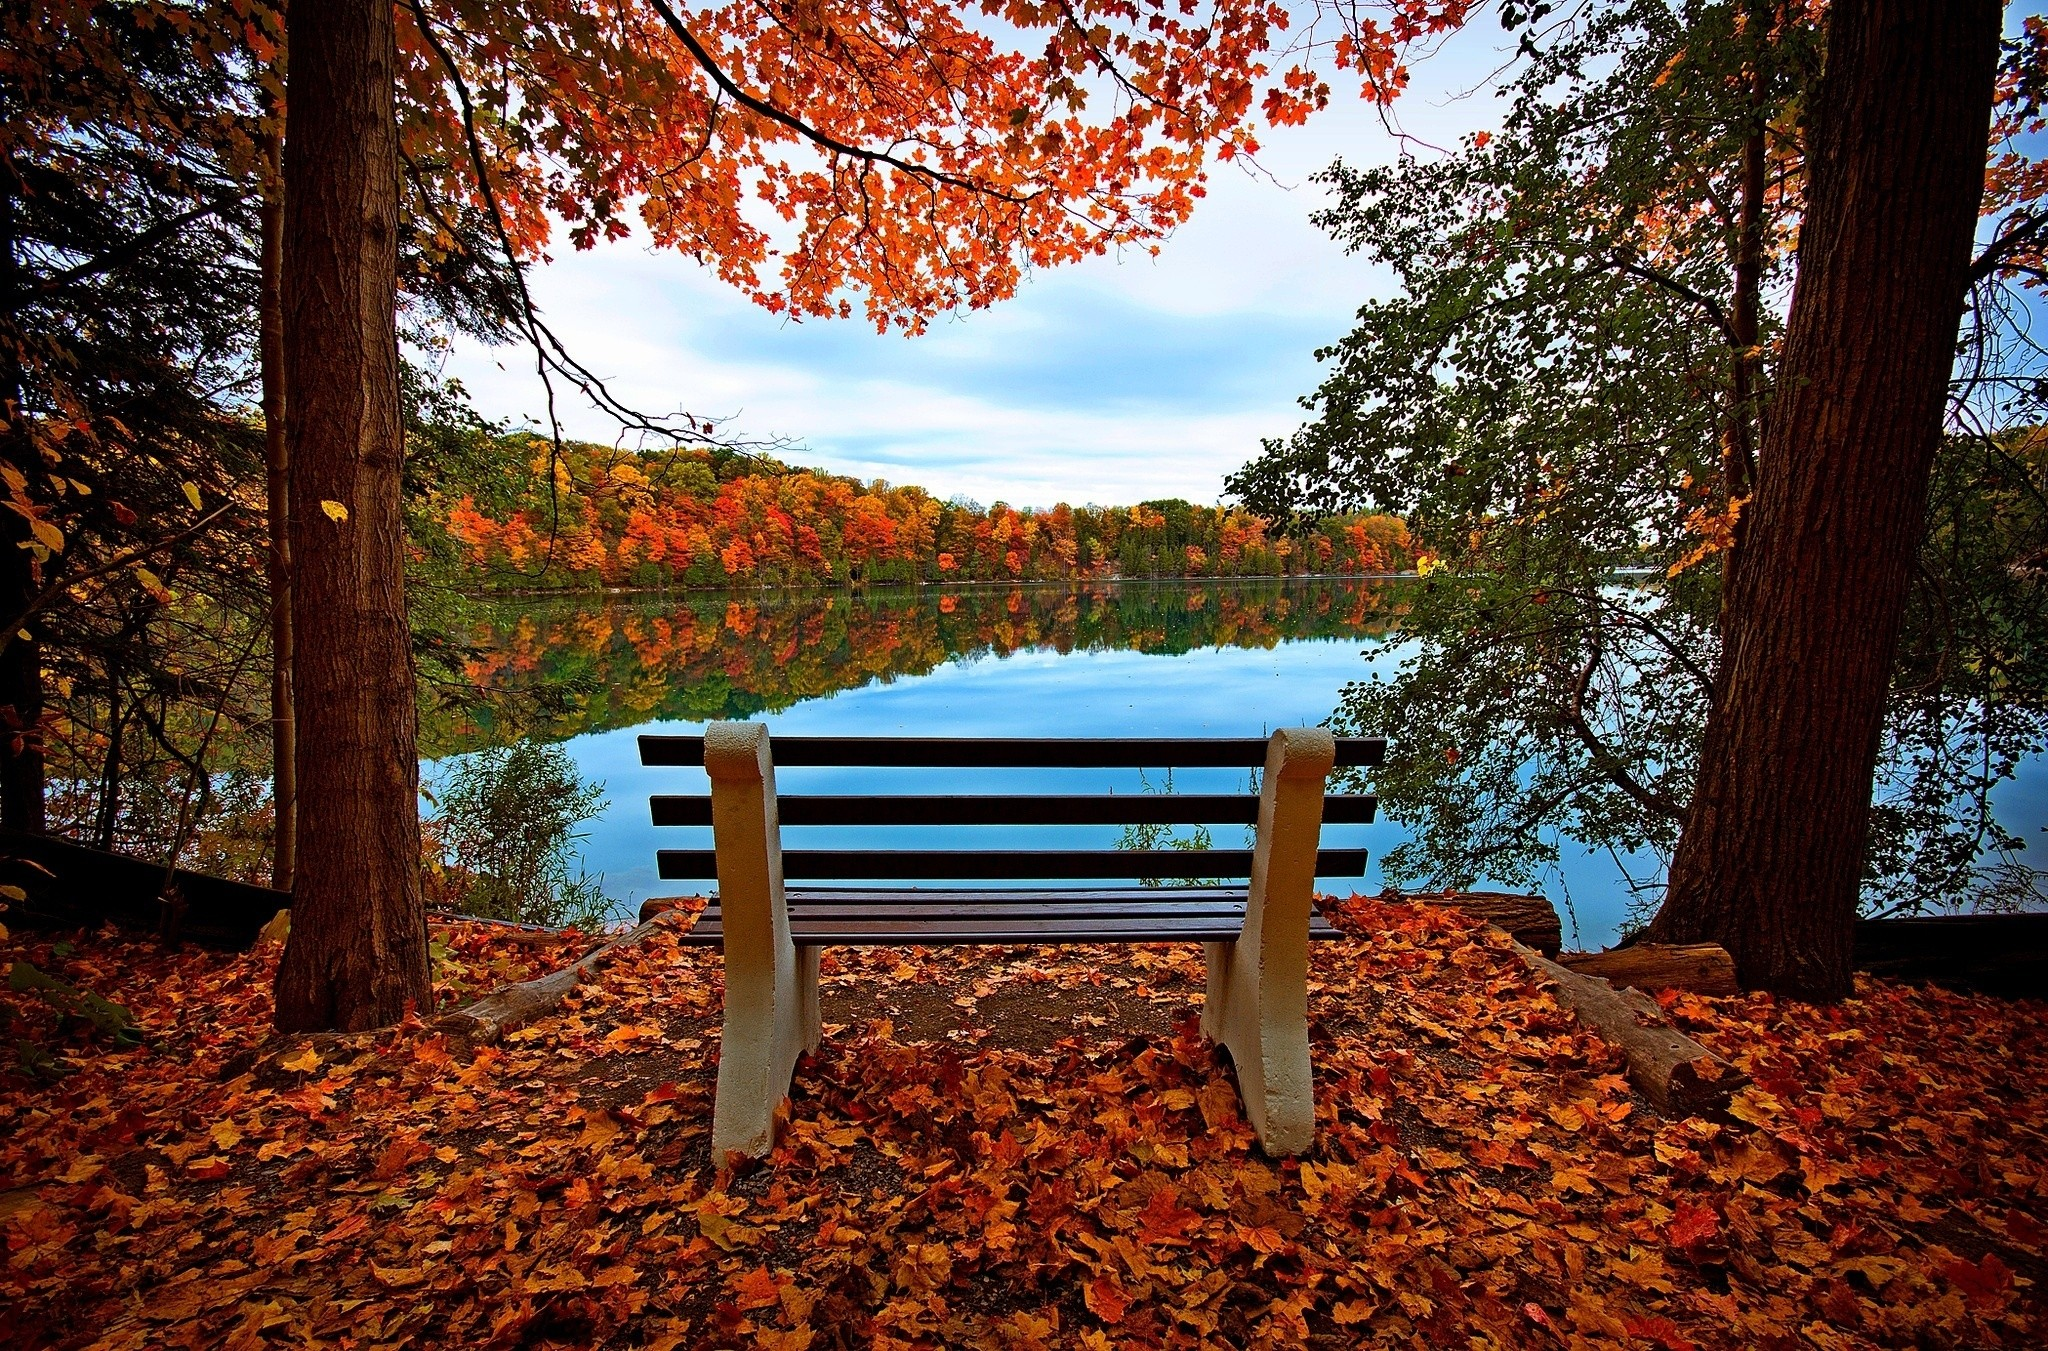 149009 download wallpaper Autumn, Nature, Rivers, Trees, Lake, Bench screensavers and pictures for free